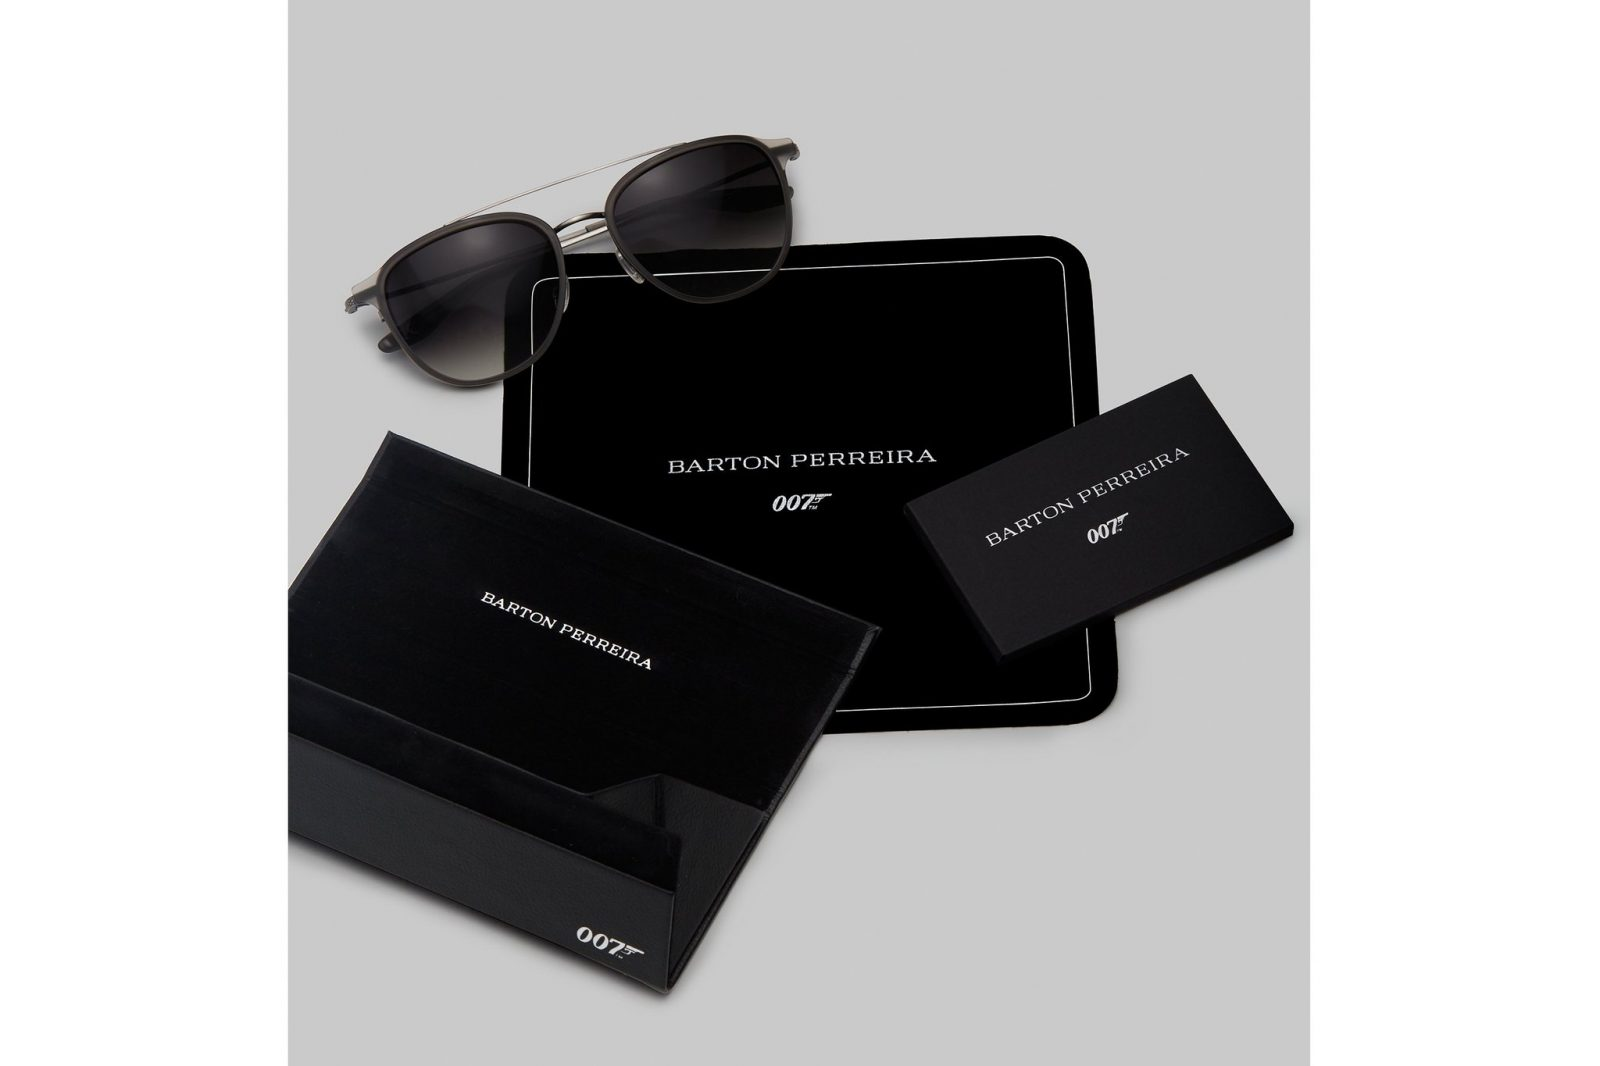 Barton Perreira James Bond 007 sunglasses gift card for the man in your life